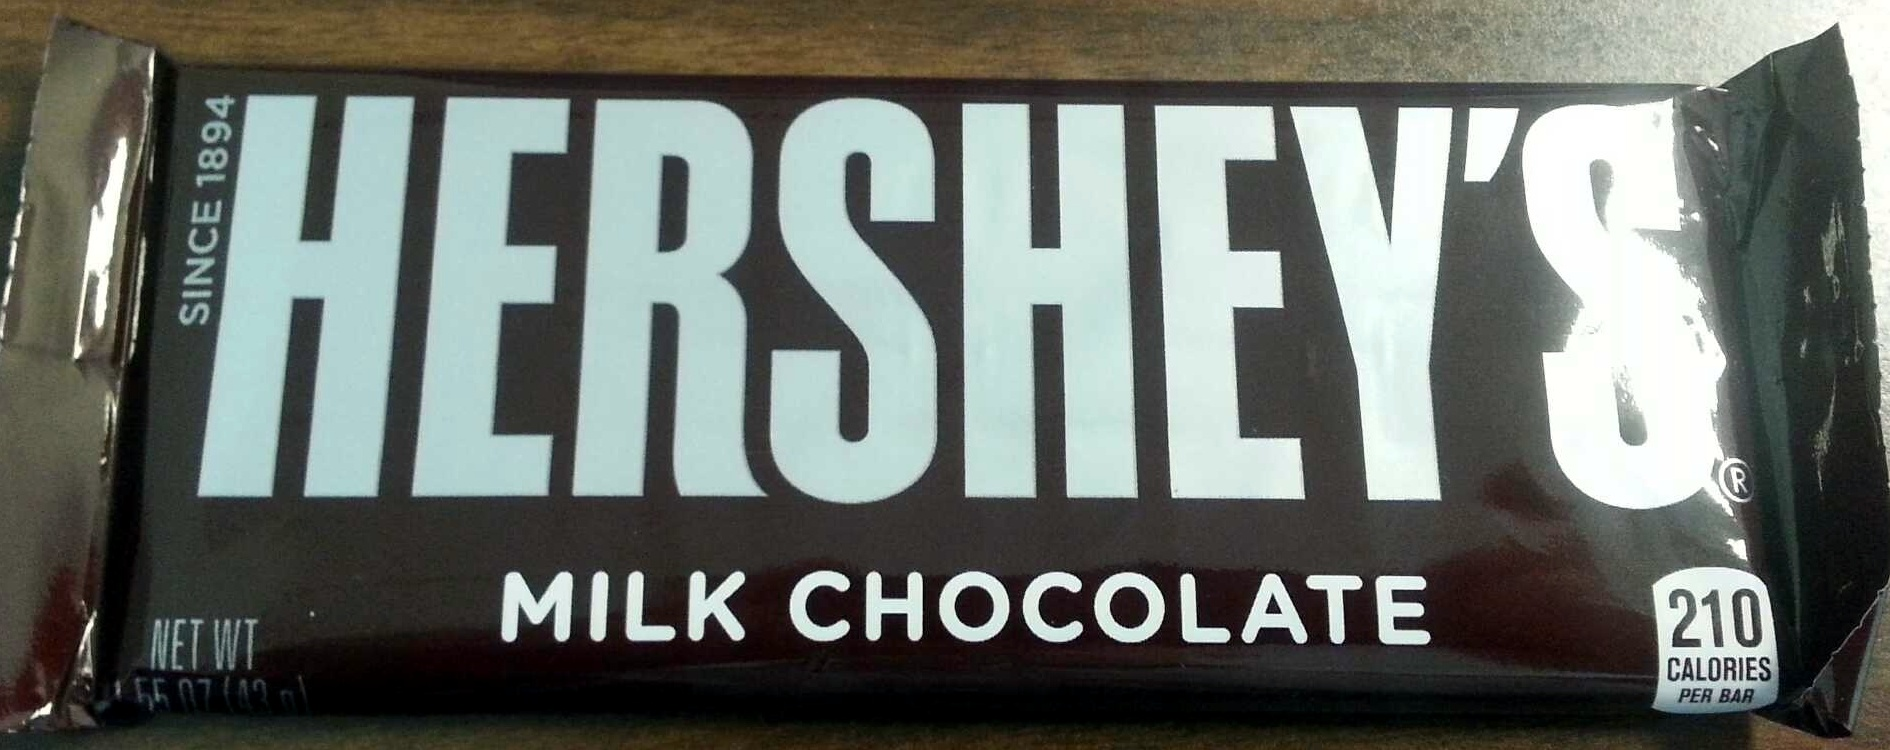 Hershey's Milk Chocolate - Product - en